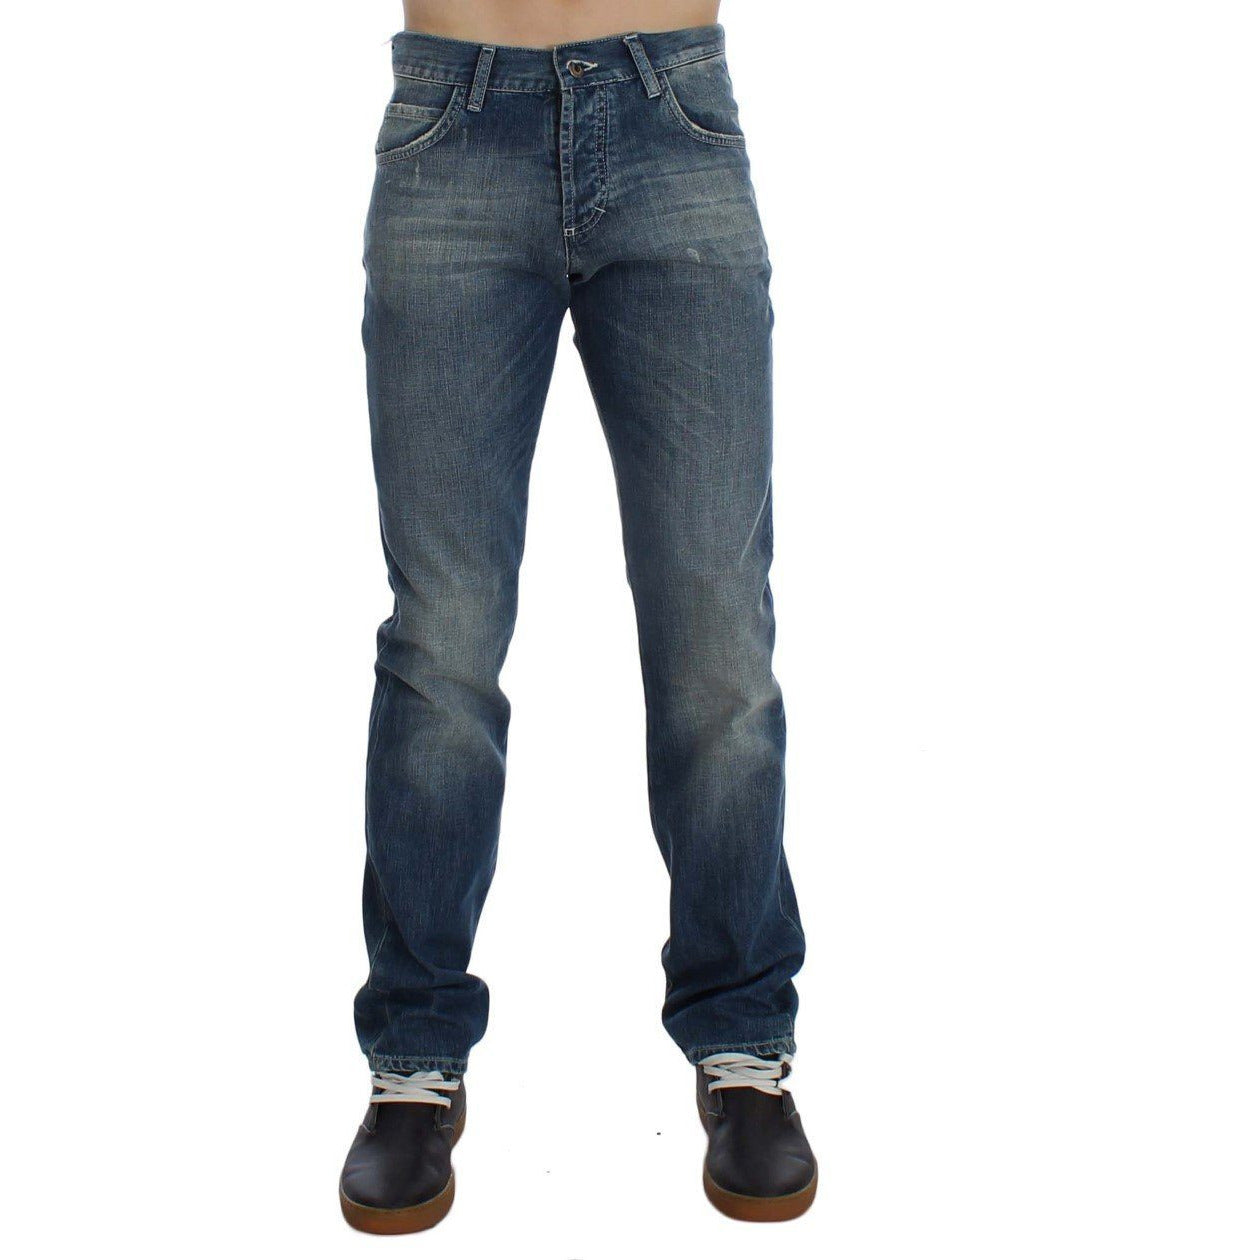 Blue Wash Cotton Regular Fit Jeans EXTE